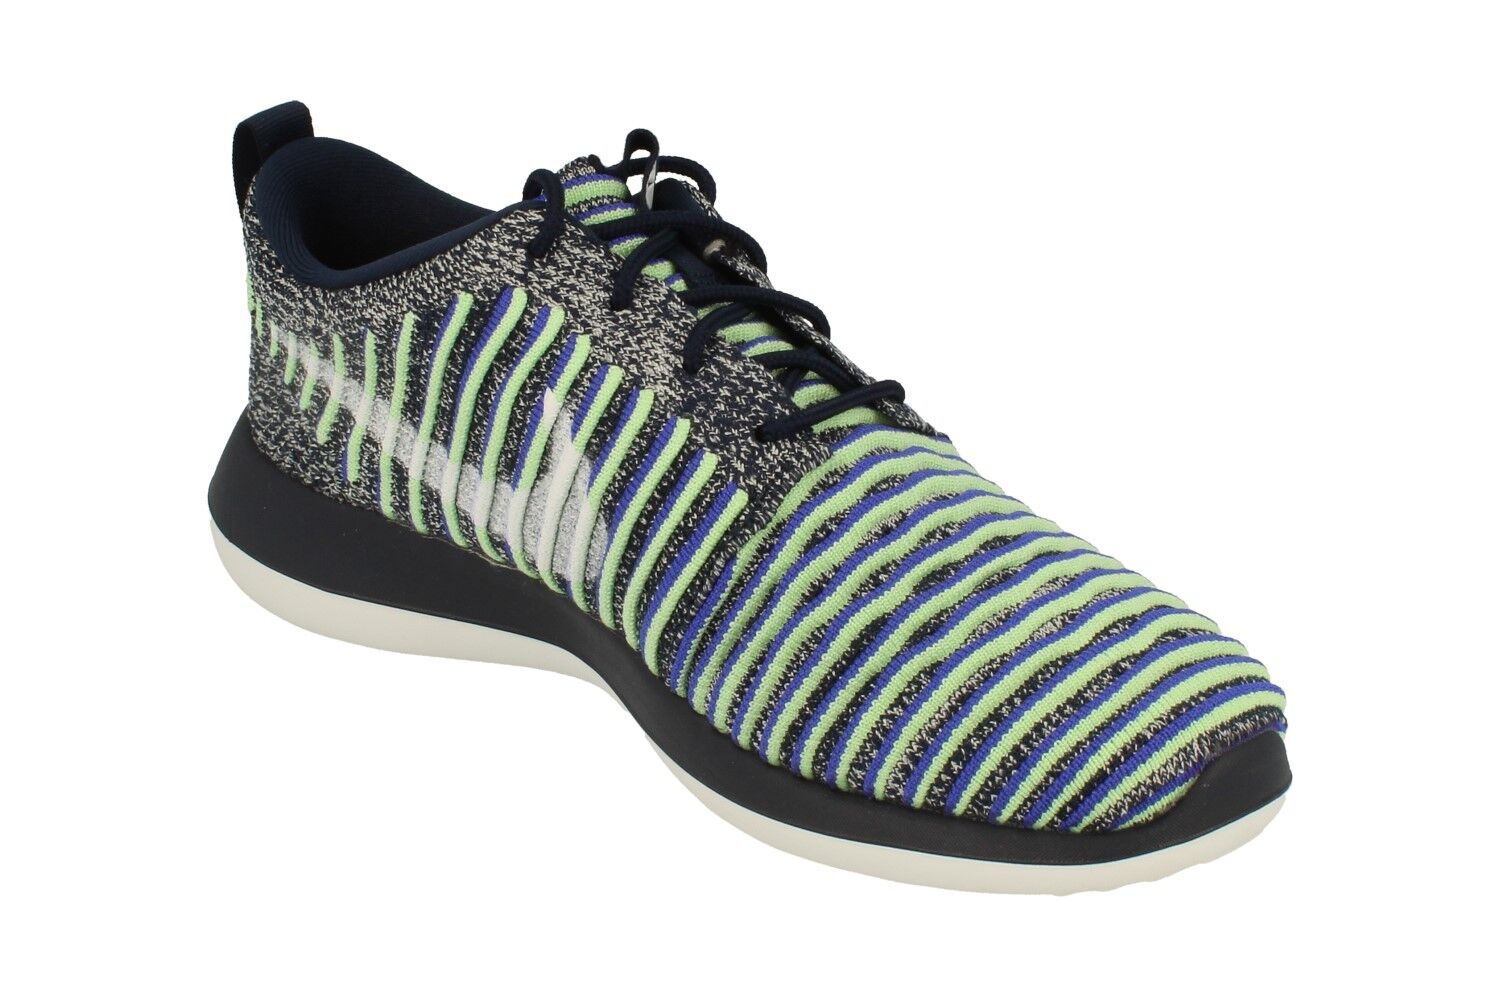 880b6880fede Nike Roshe Two Flyknit Womens 844929-401 Navy Binary Blue Running Shoes  Size 8 for sale online